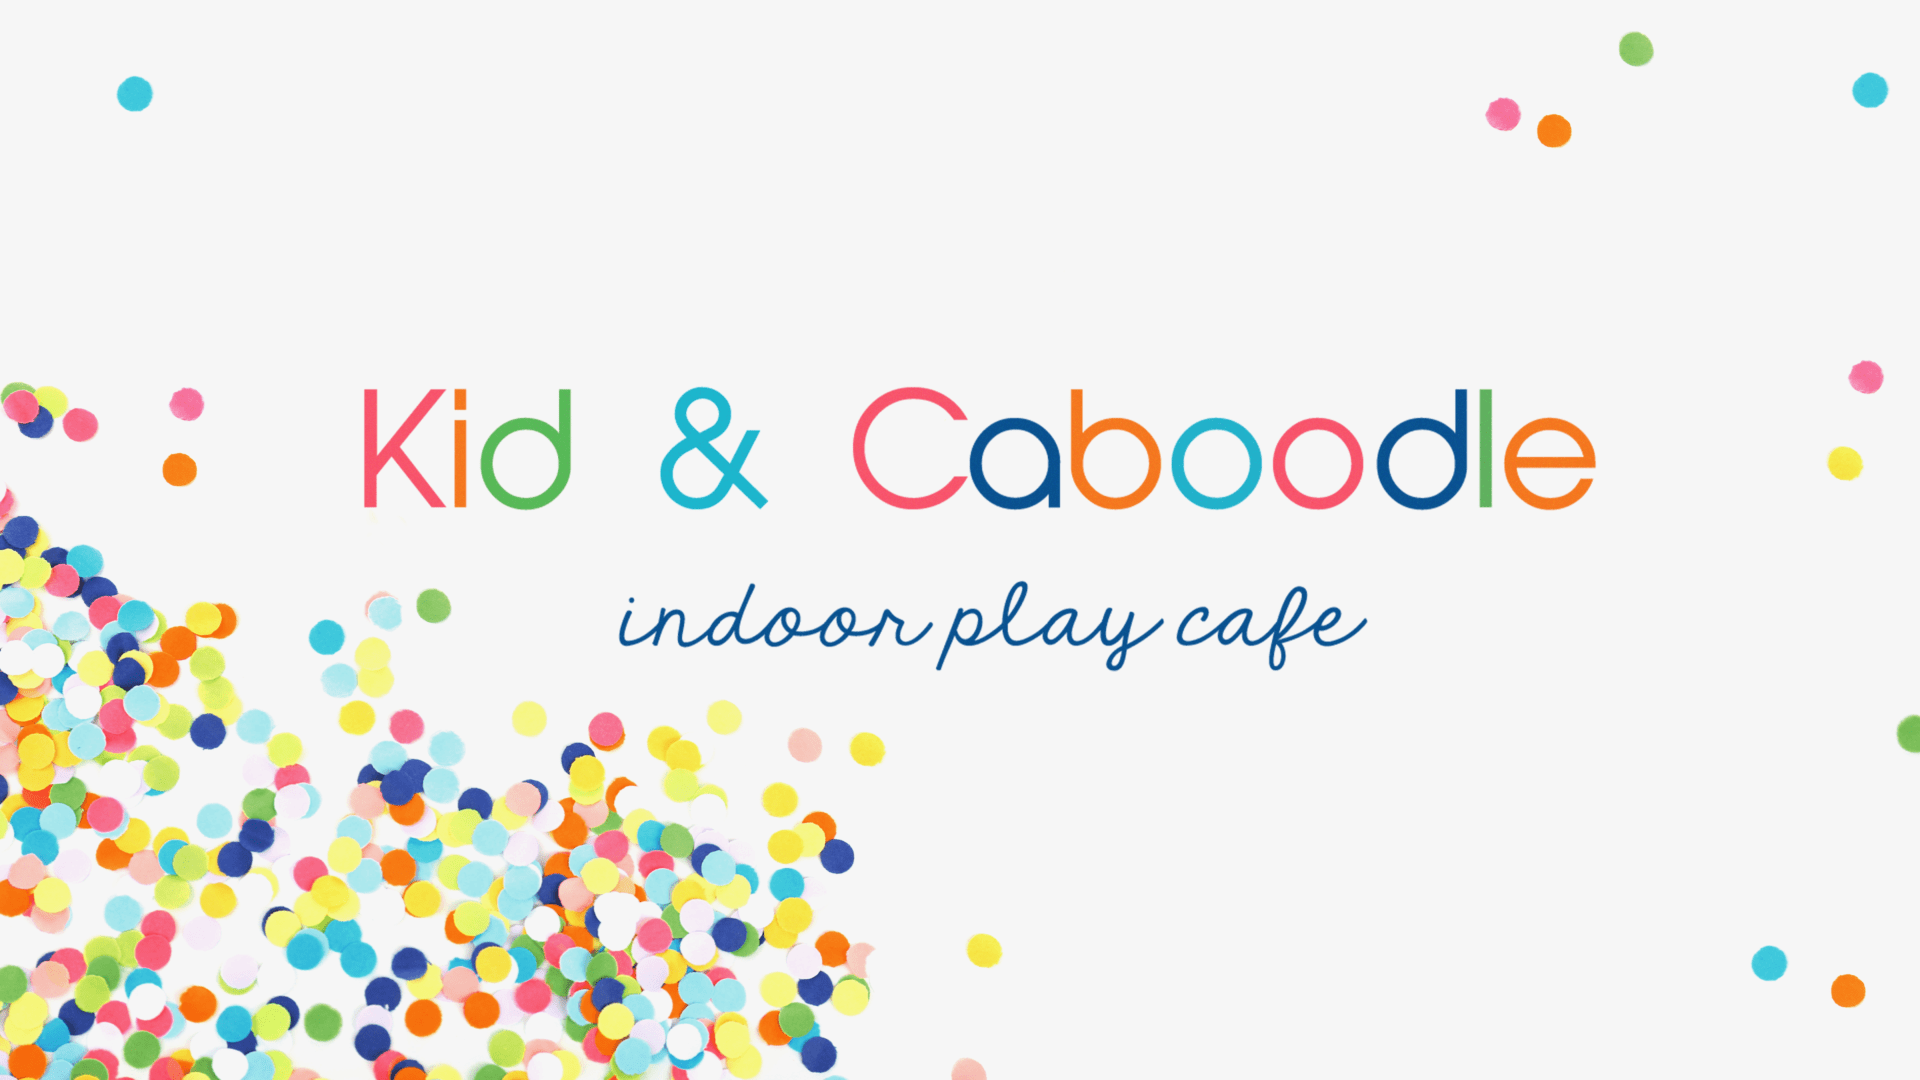 Kid and Caboodle play indoor play cafe branding